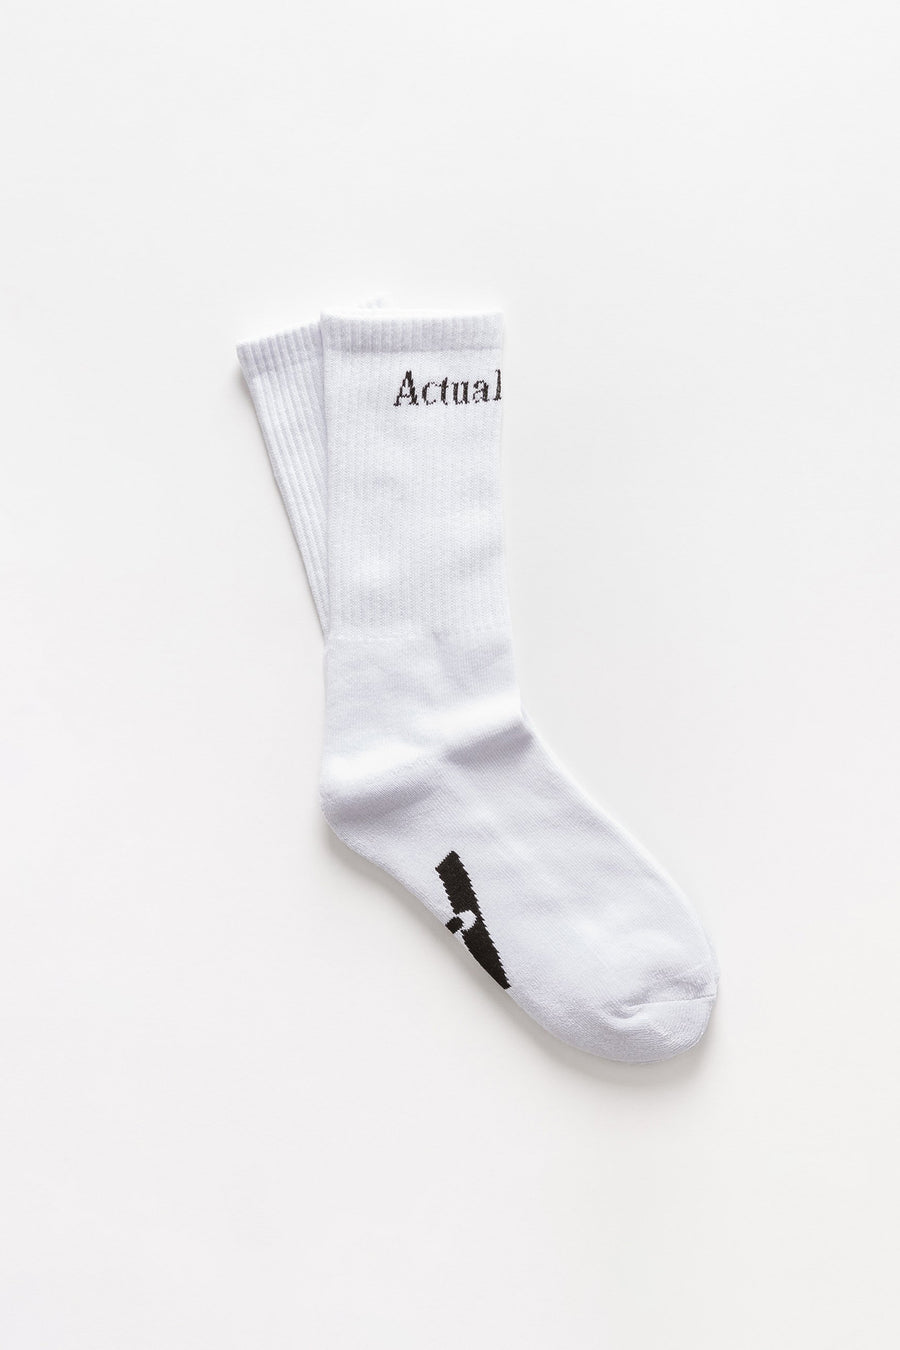 Actual Source Socks in White - Notre